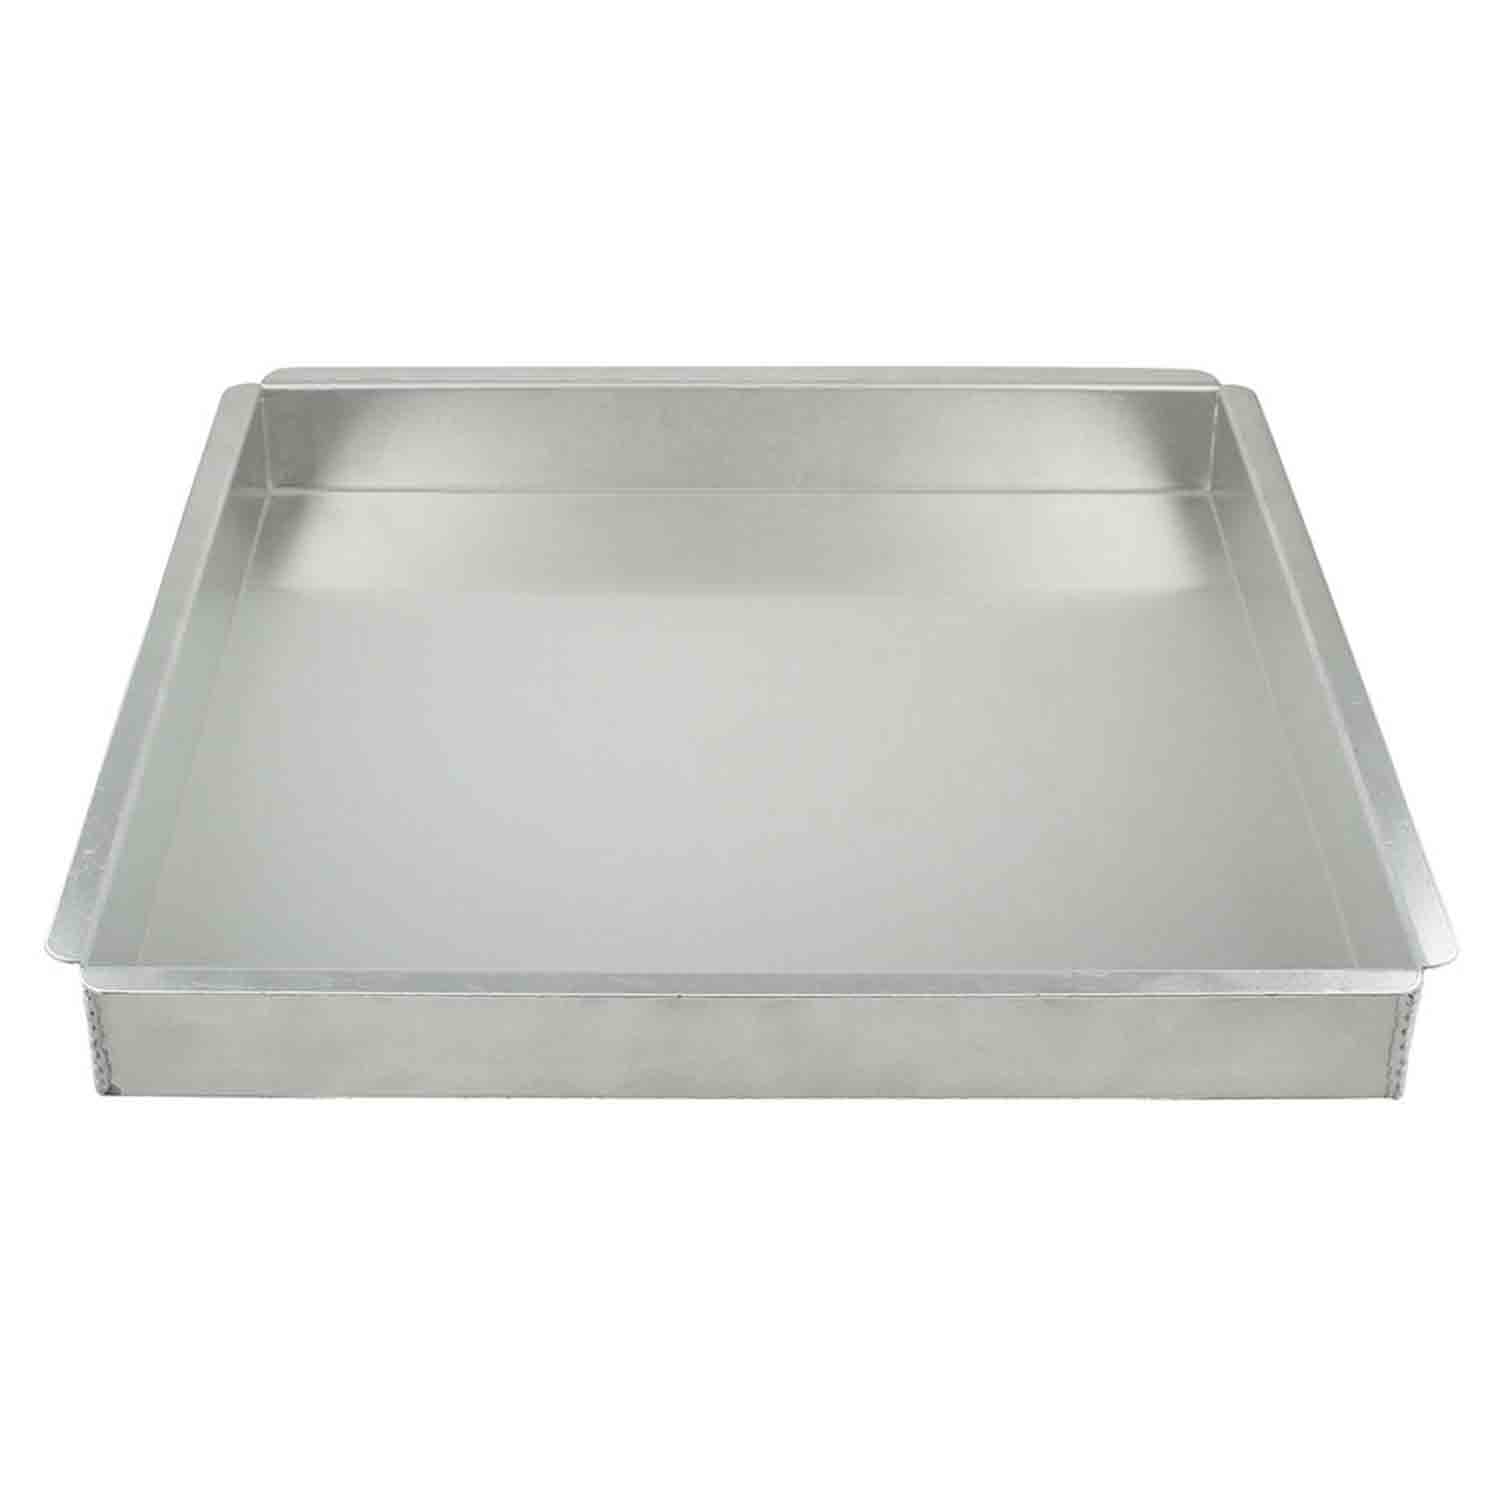 "16 x 2"" Magic Line Square Cake Pan"